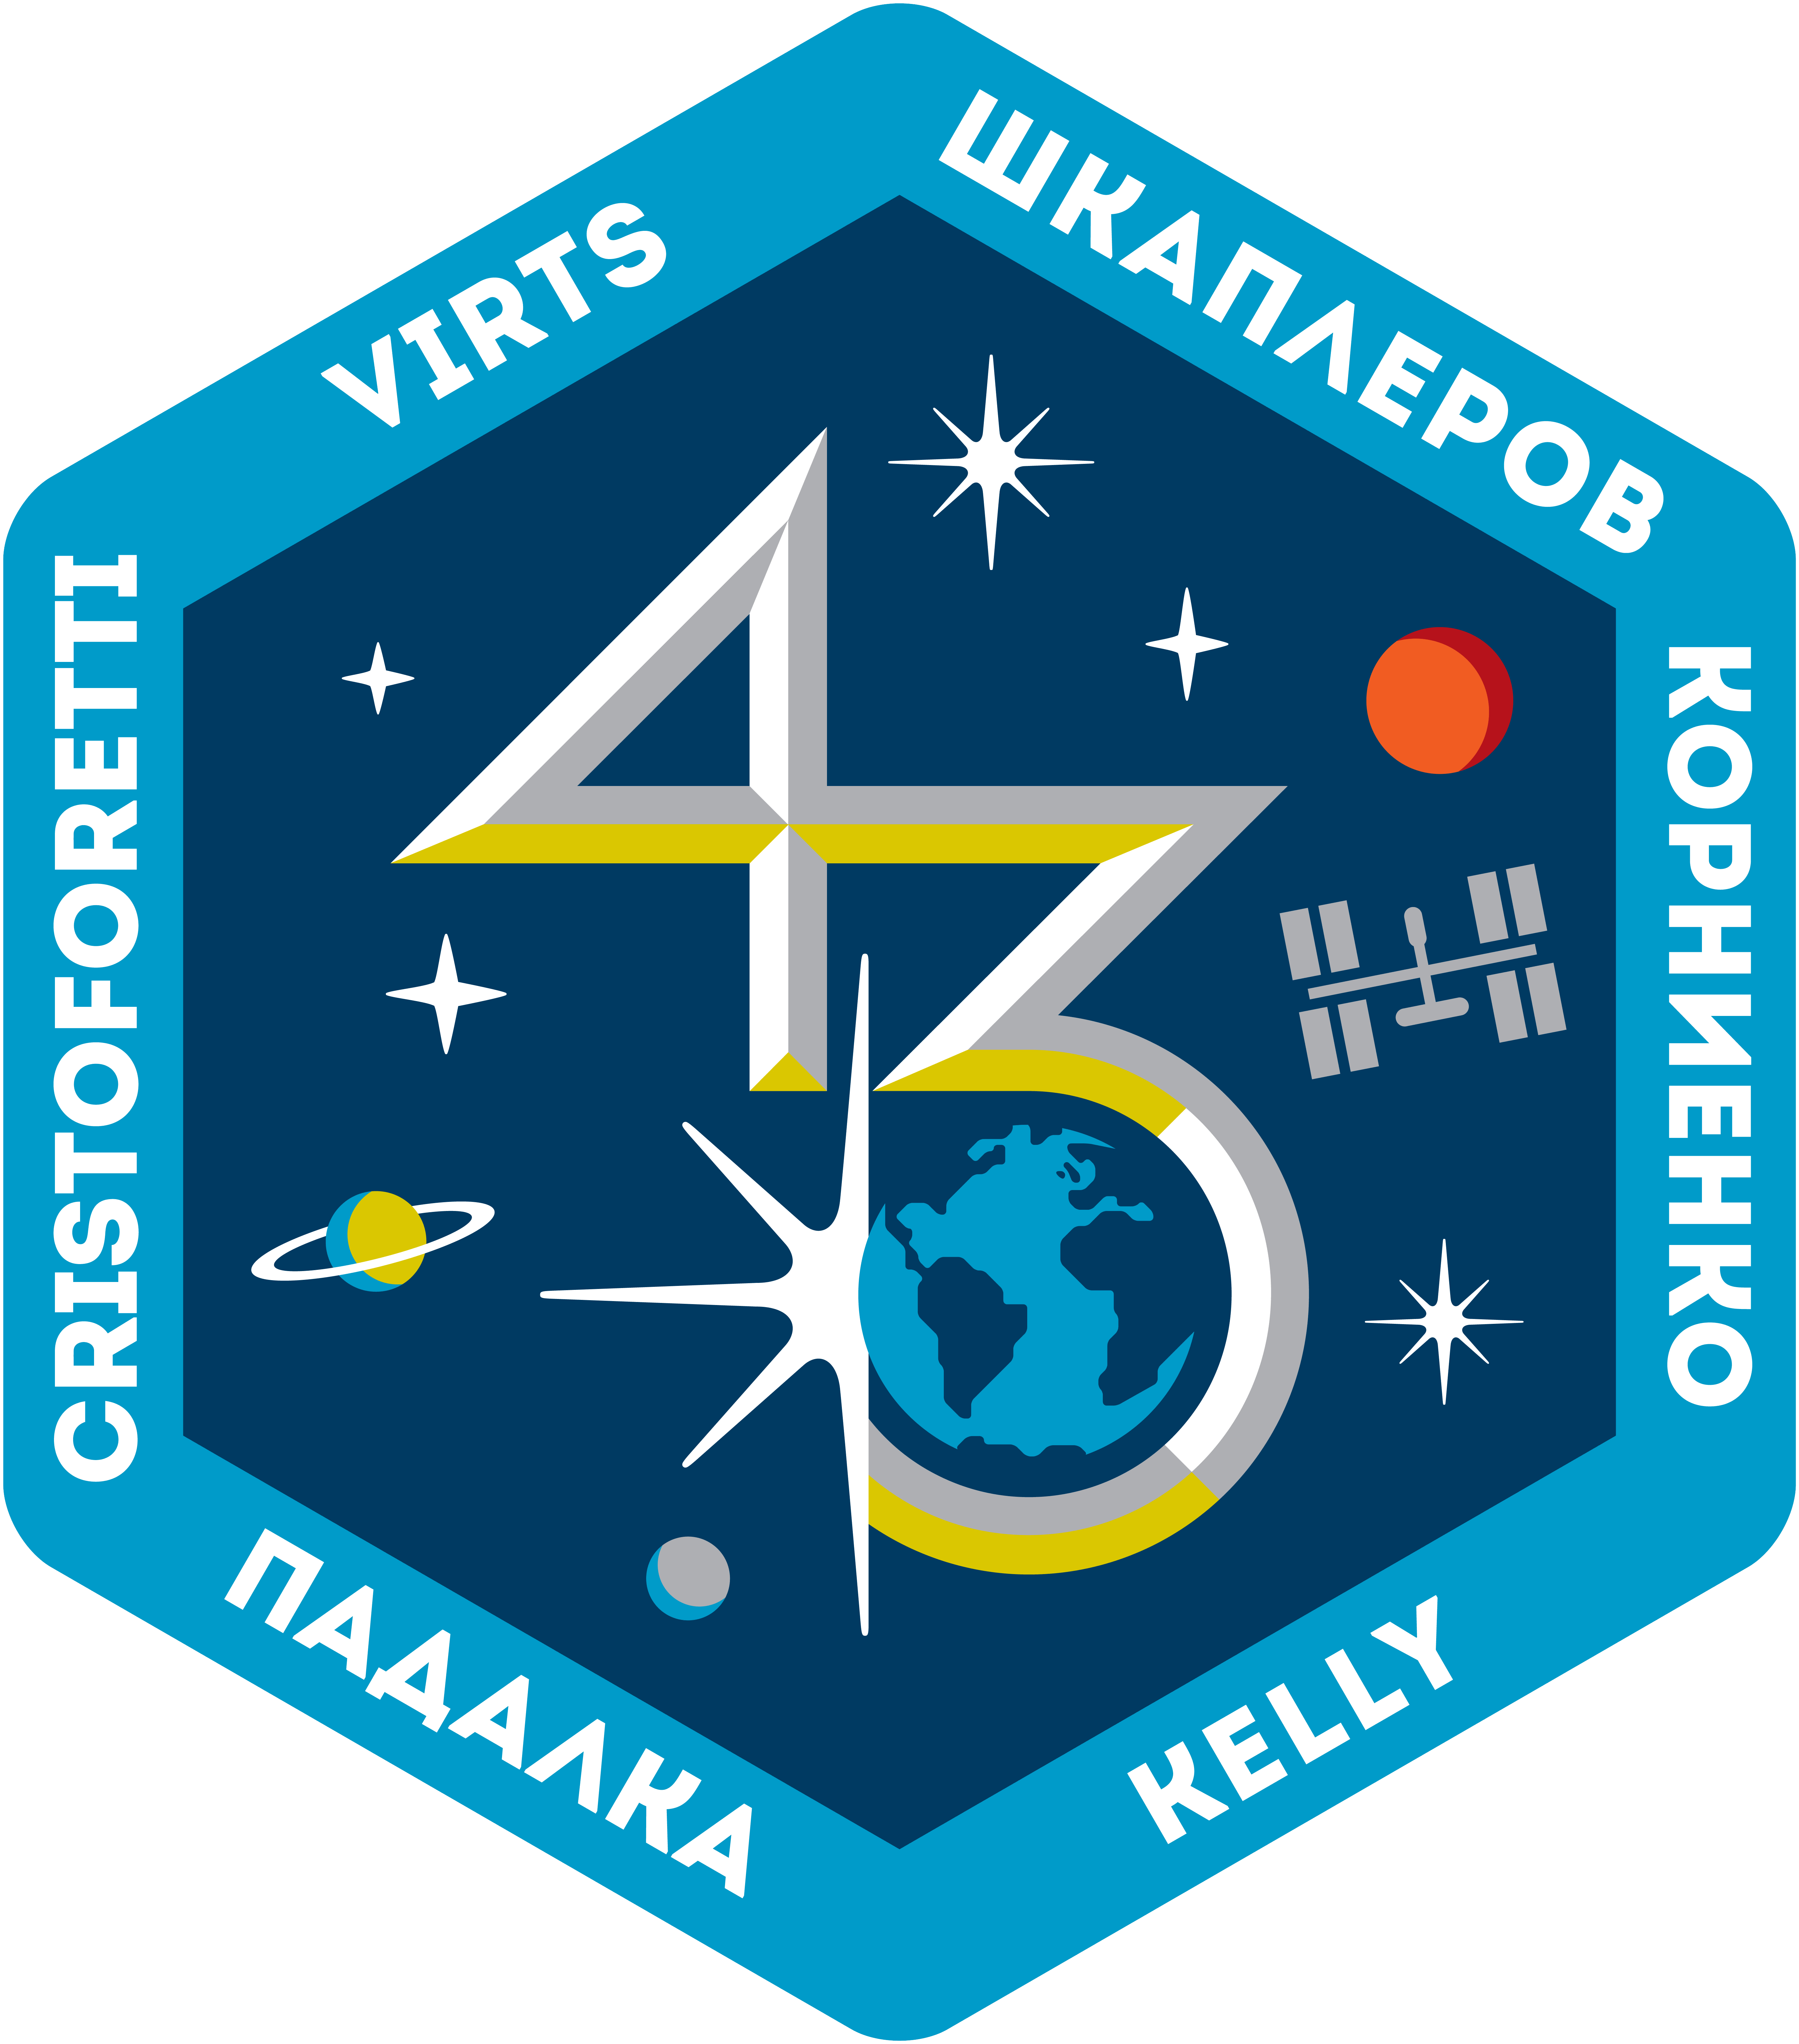 file iss expedition 43 patch png wikimedia commons